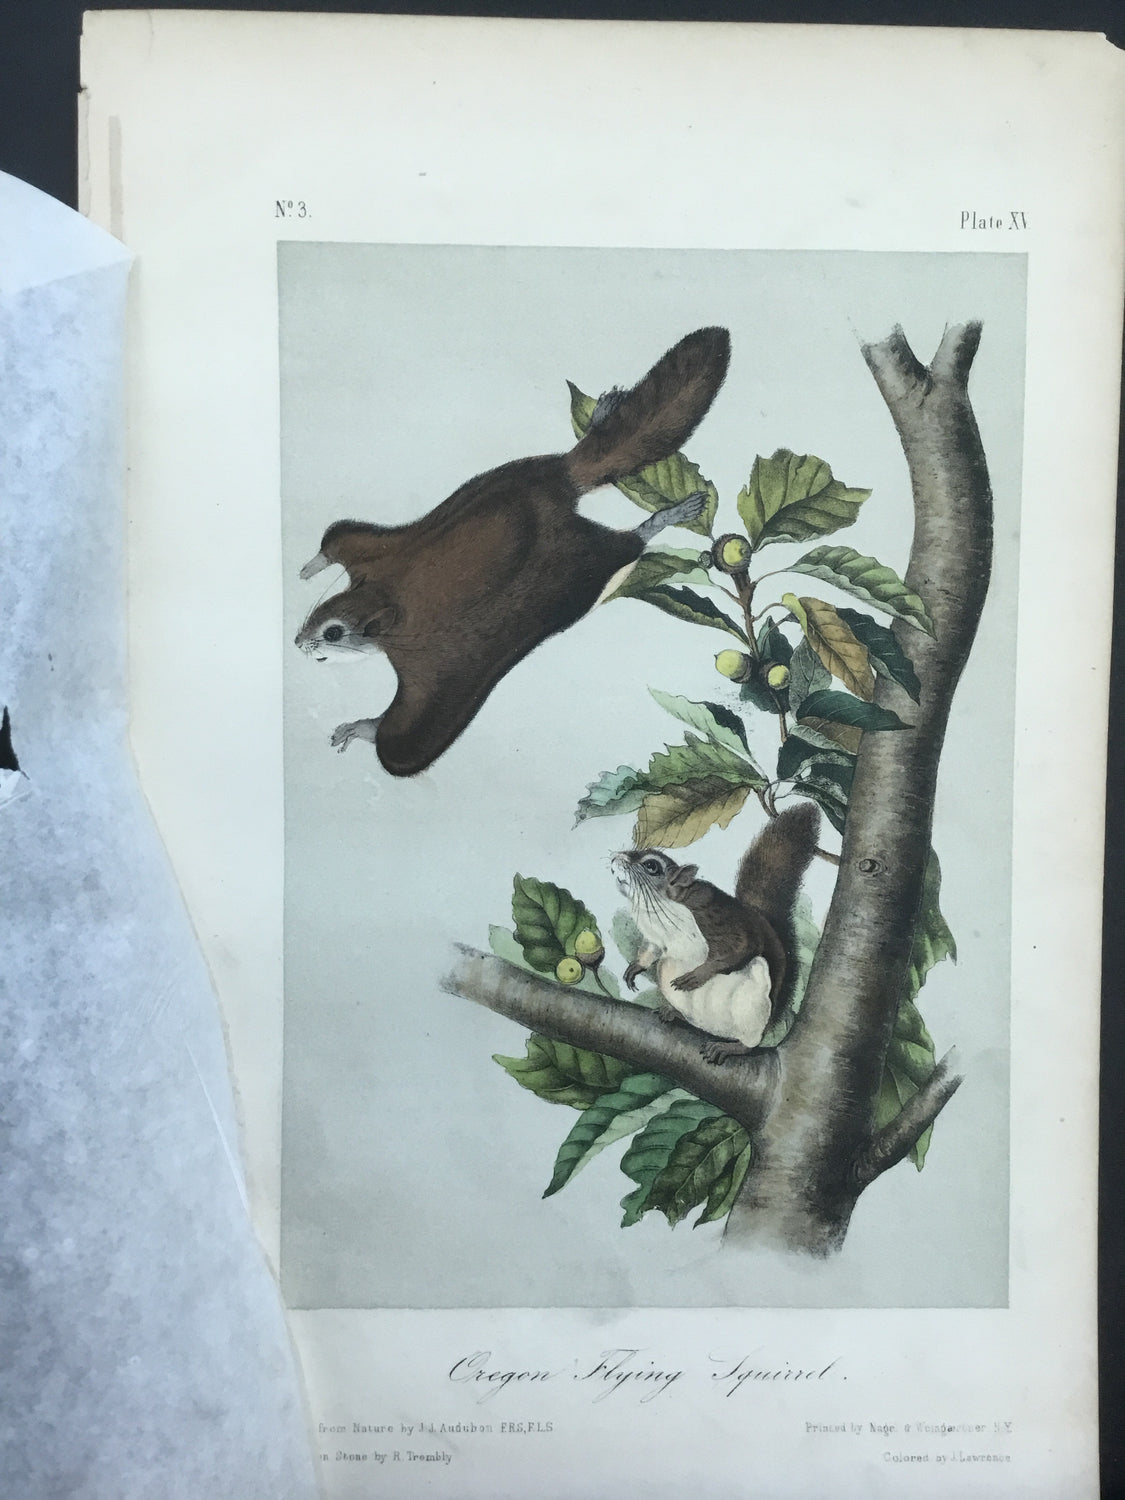 Audubon Original Octavo Quadruped 15, Oregon Flying Squirrel